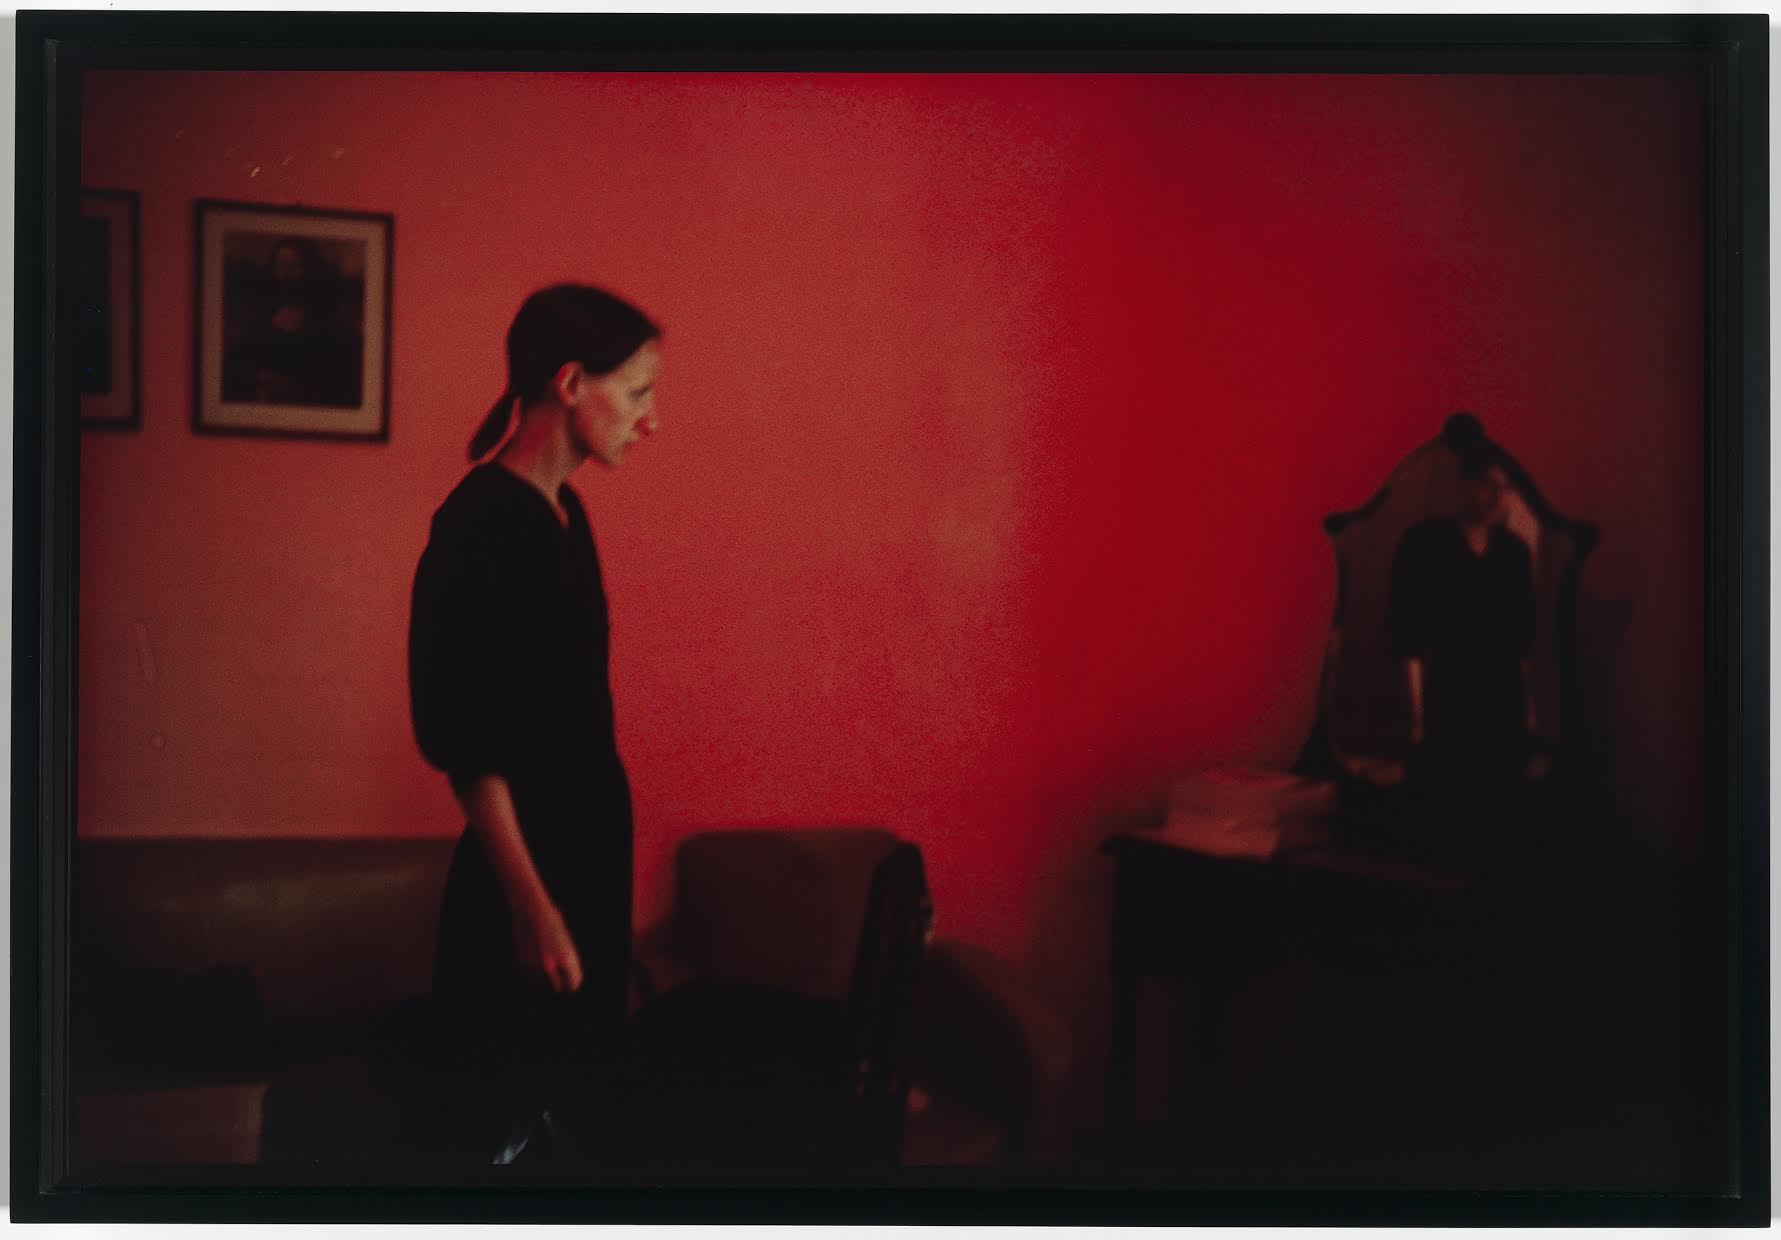 """Suzanne with Mona Lisa, Mexico City"". Nan Goldin (American, born in 1953). 1981. Photograph, silver-dye bleach print. * Gift of Davis and Carol Noble. © Nan Goldin. * Photograph © Museum of Fine Arts, Boston"